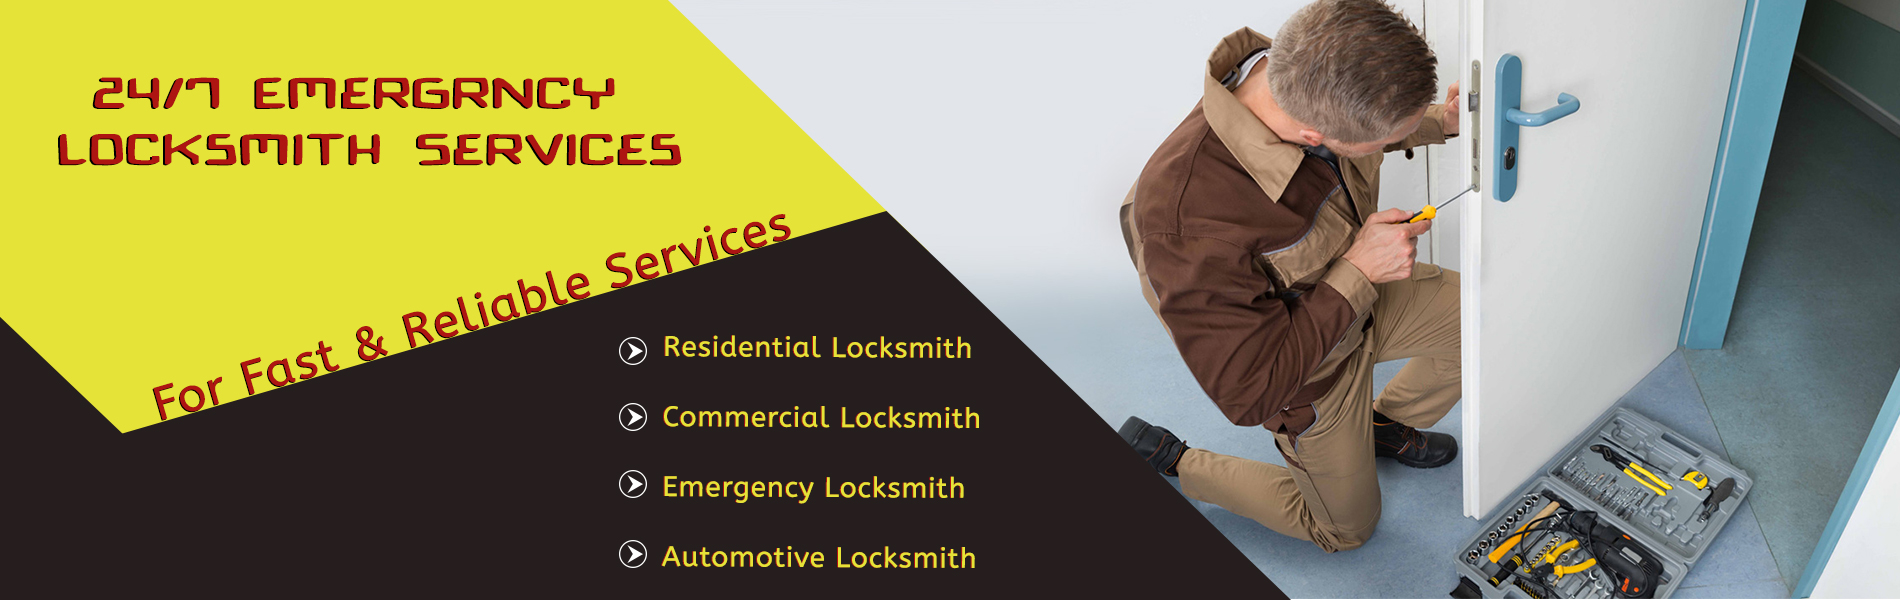 San Antonio Lock And Safe San Antonio, TX 210-780-6551